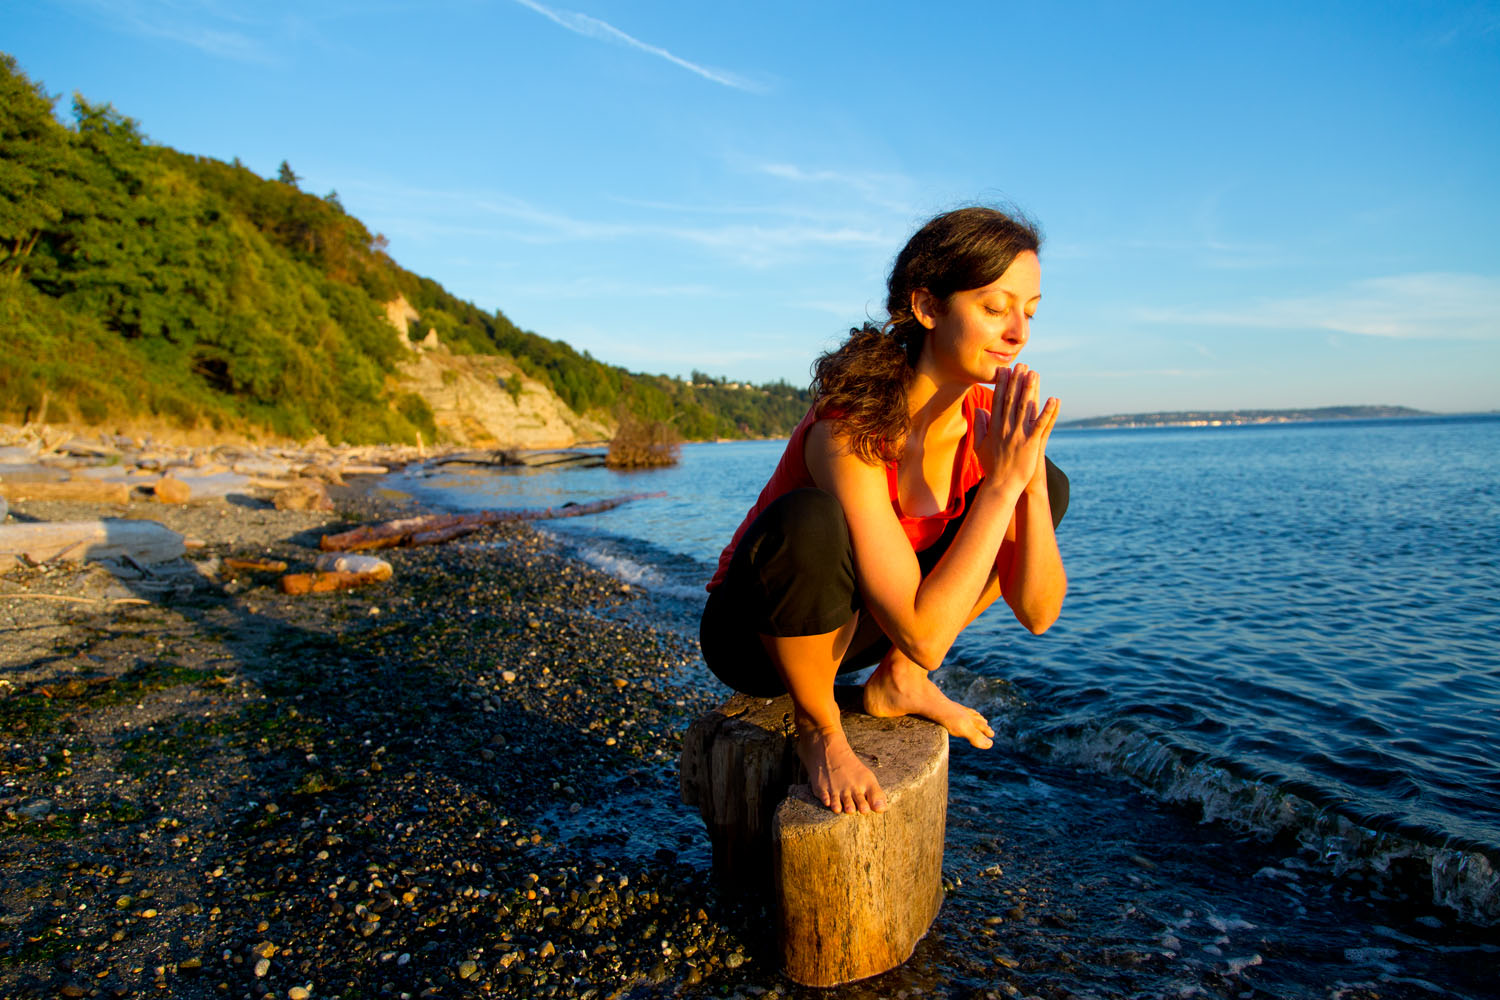 Lifestyle: Elizabeth Kovar practicing yoga on the beach at Discovery Park at sunset, Seattle